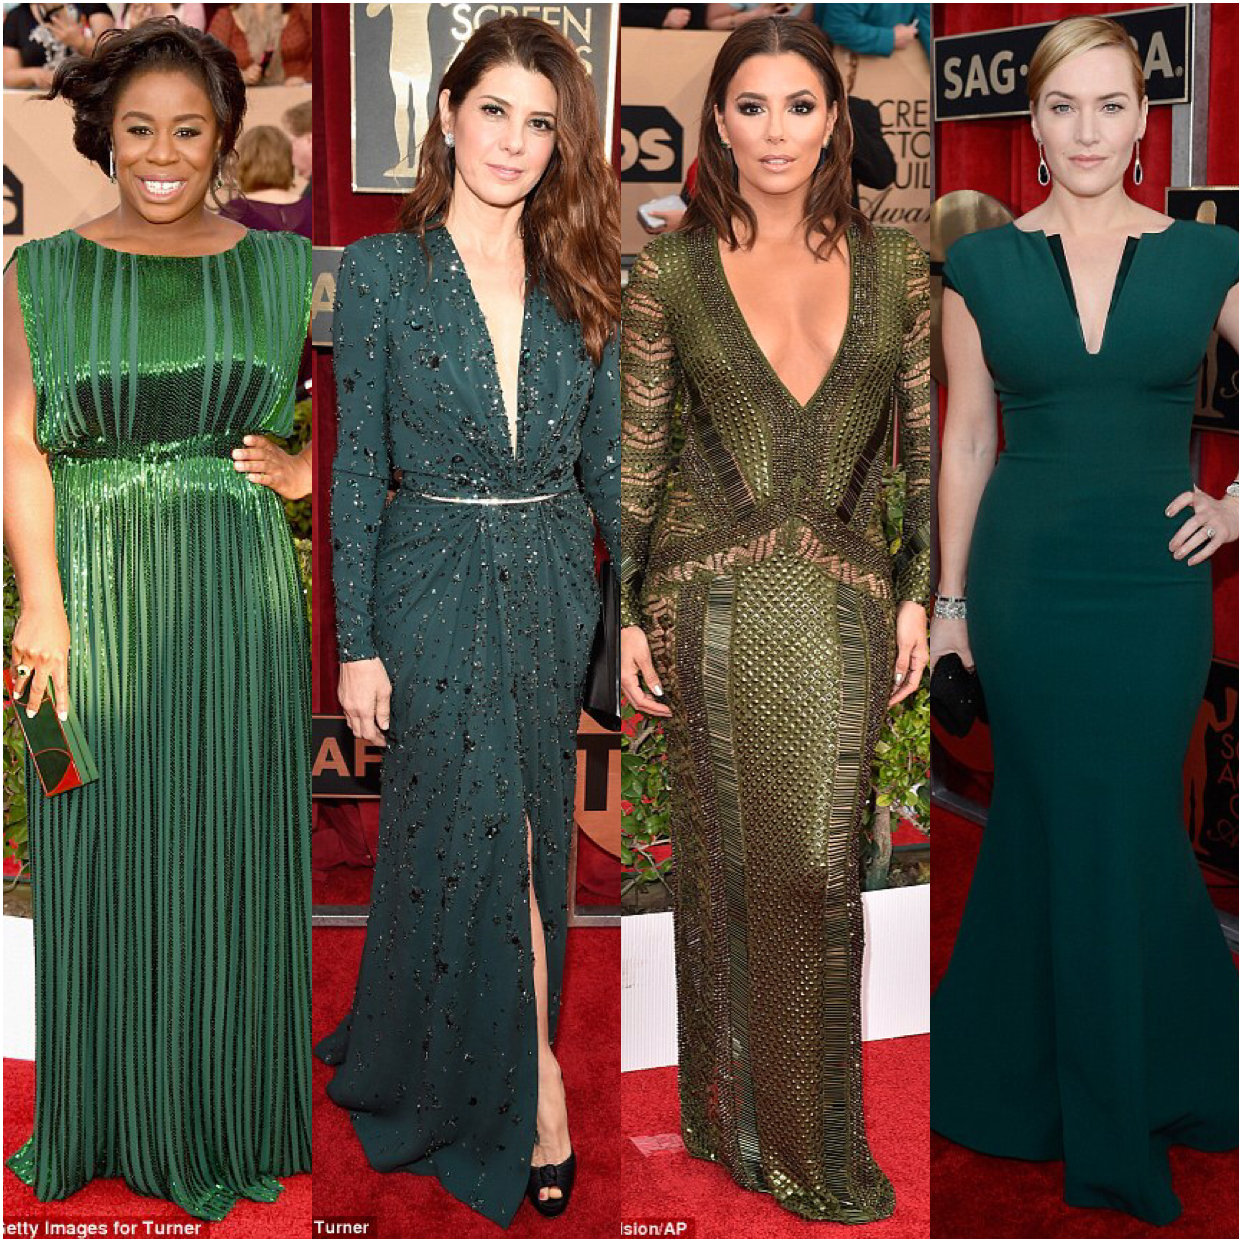 See How The Stars Wowed In Green, Black And Red At The 2016 Sag Awards + Full List Of Winners